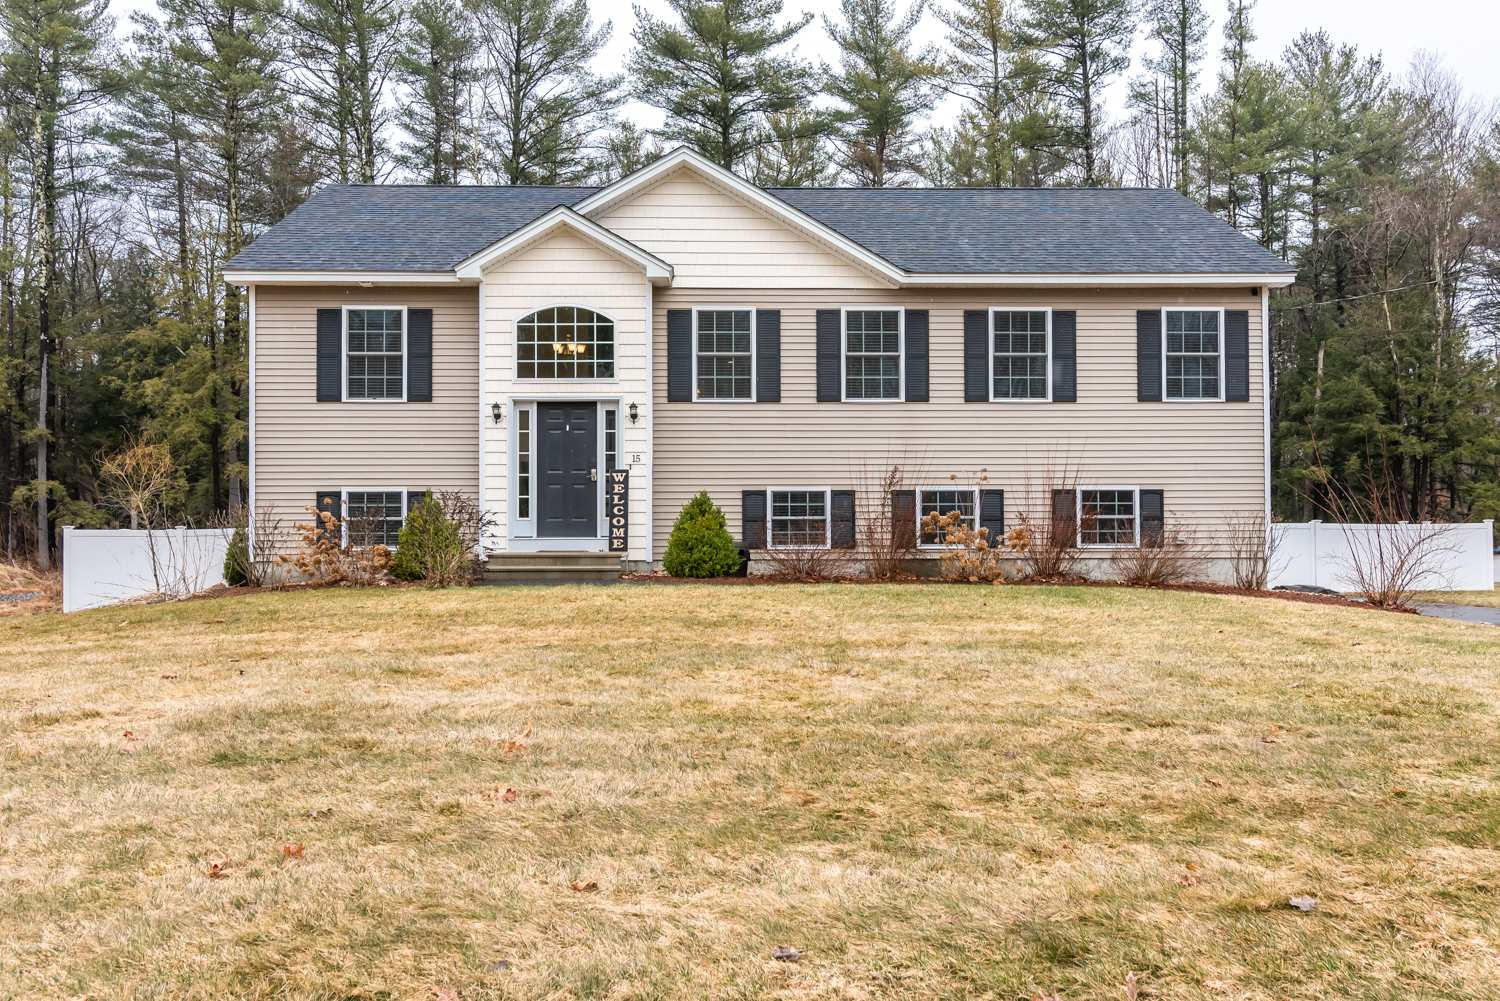 MLS 4799374: 15 Northwood Drive, Merrimack NH